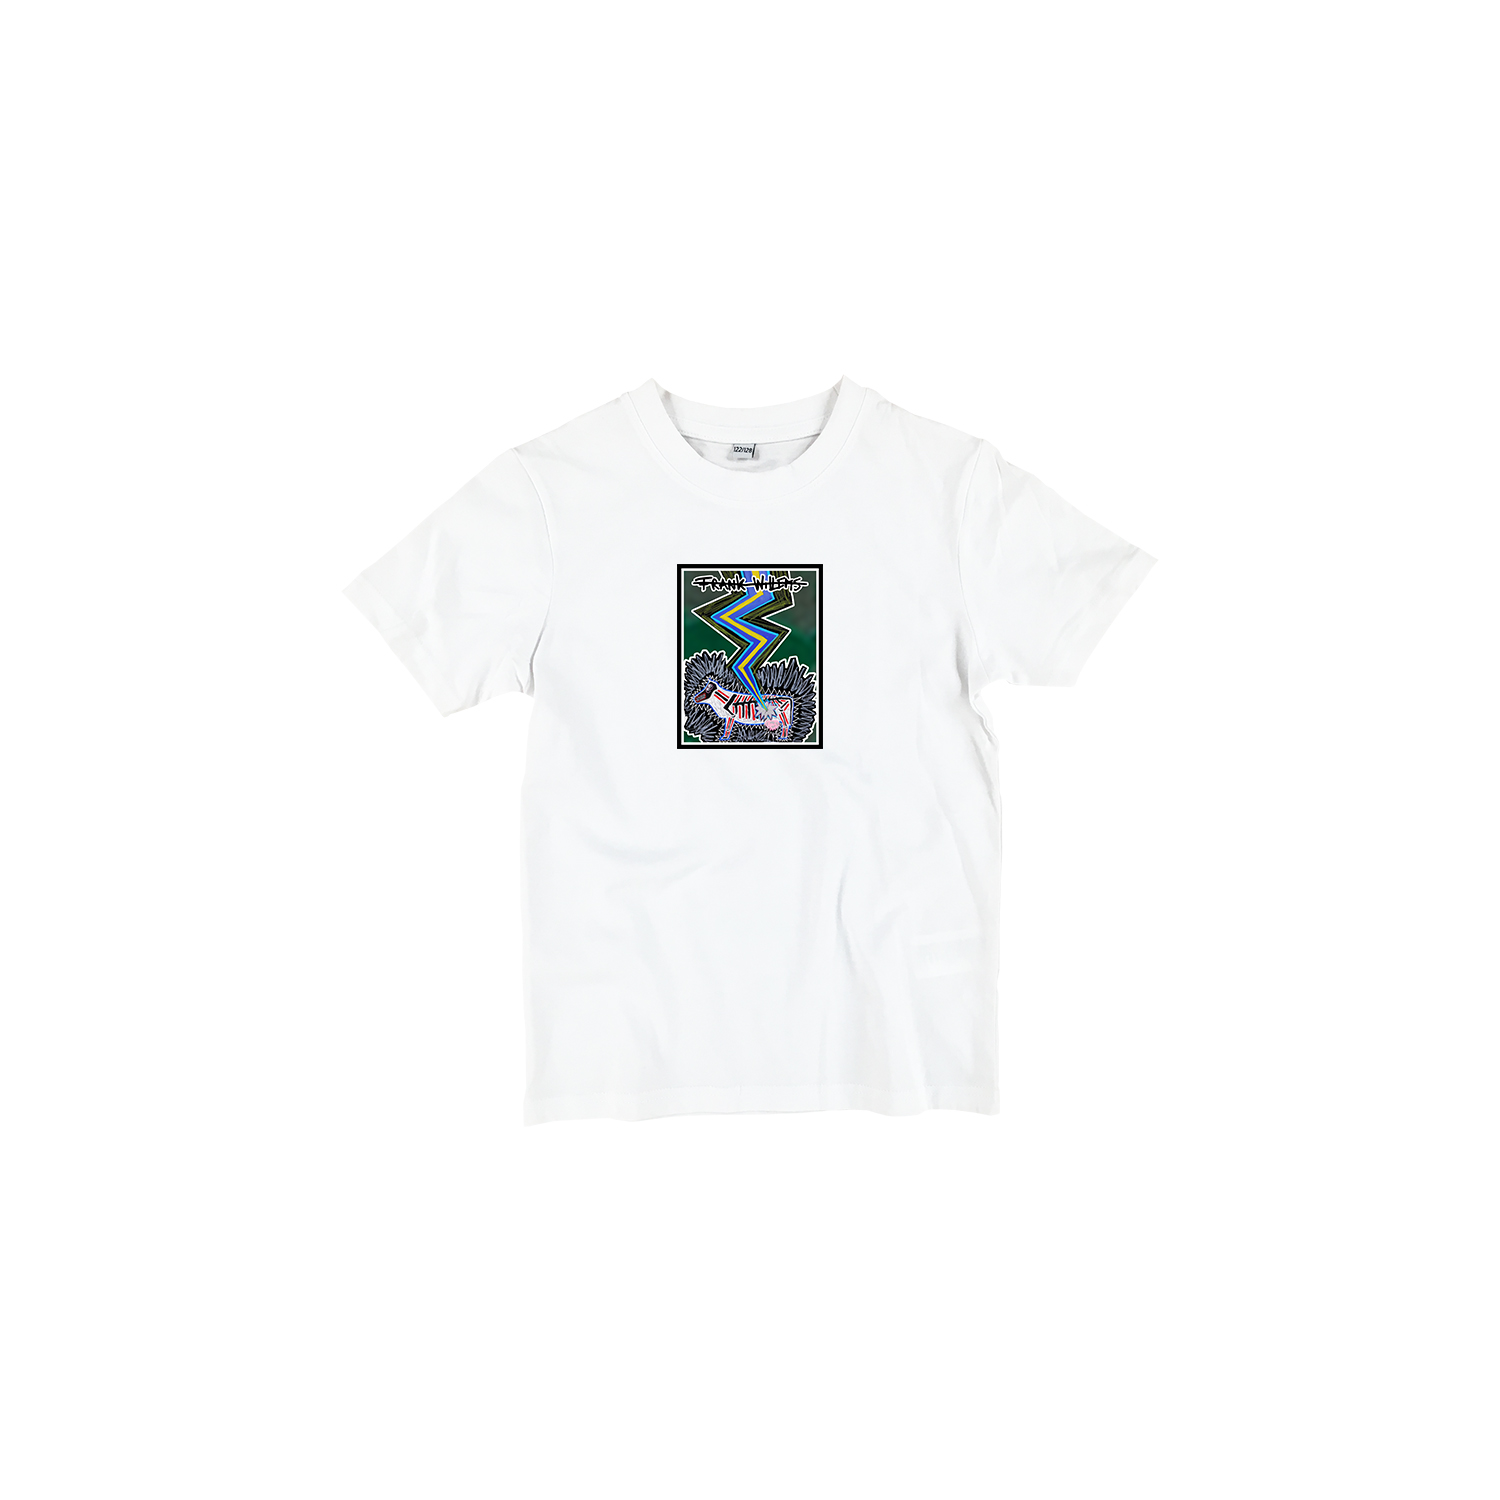 Kids T-shirt white - SILVER COLORED COW - Frank Willems